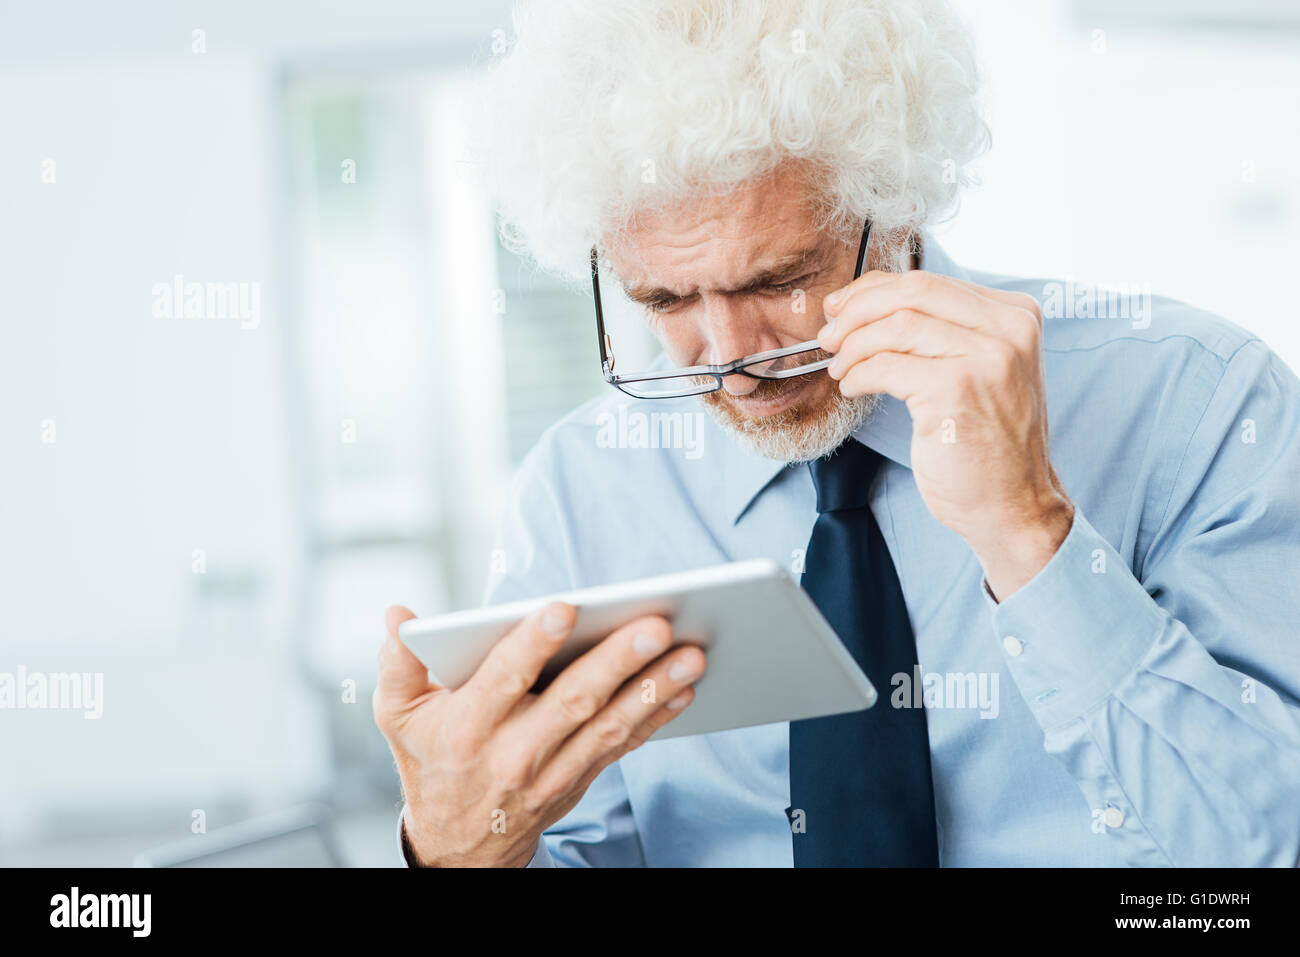 Businessman having eyesight problems, he is using a tablet and adjusting his glasses, office interior on background - Stock Image